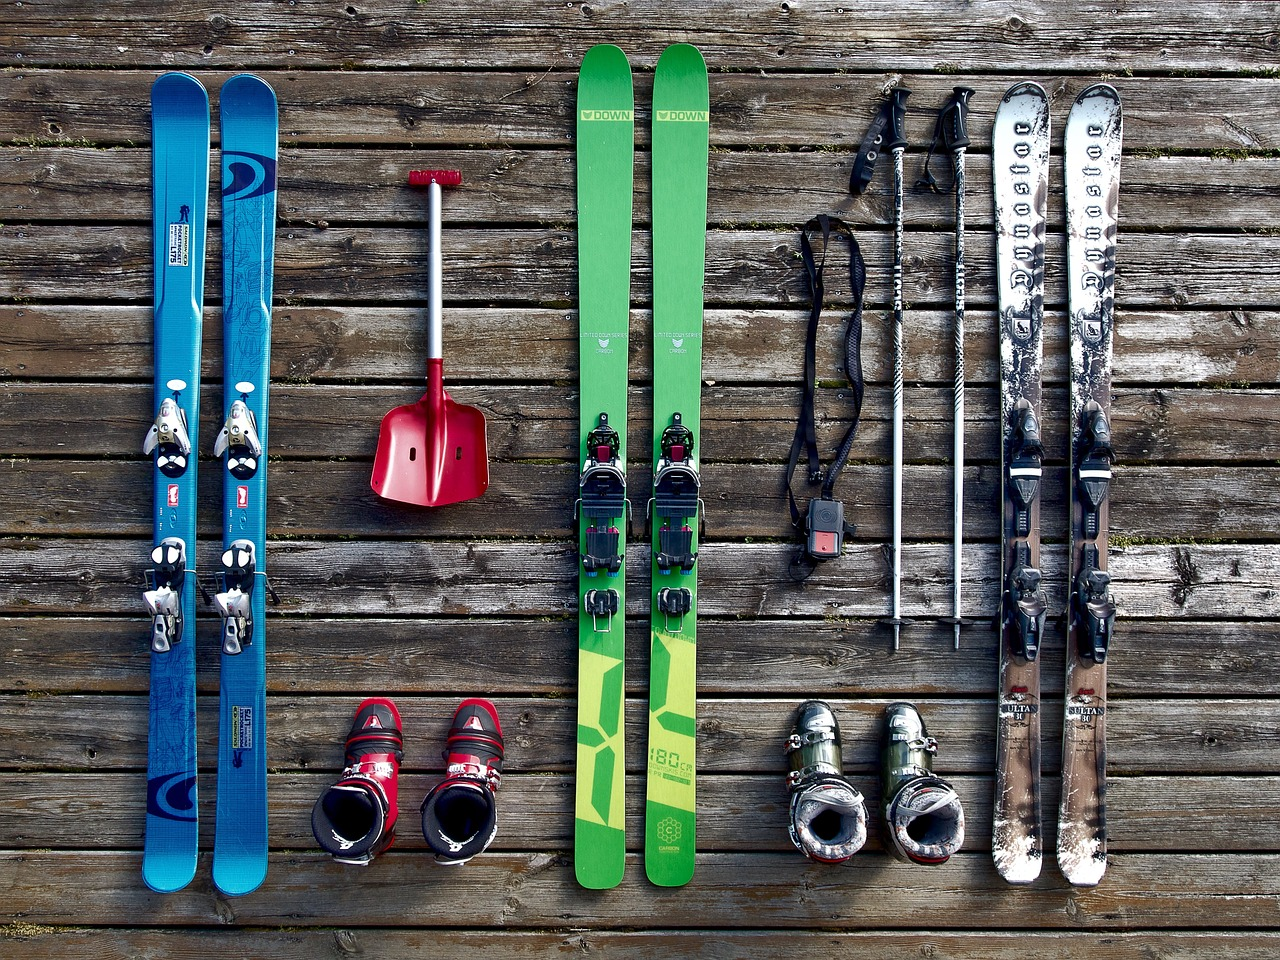 WINTER IS COMING… AND SO IS THE SKIING SEASON